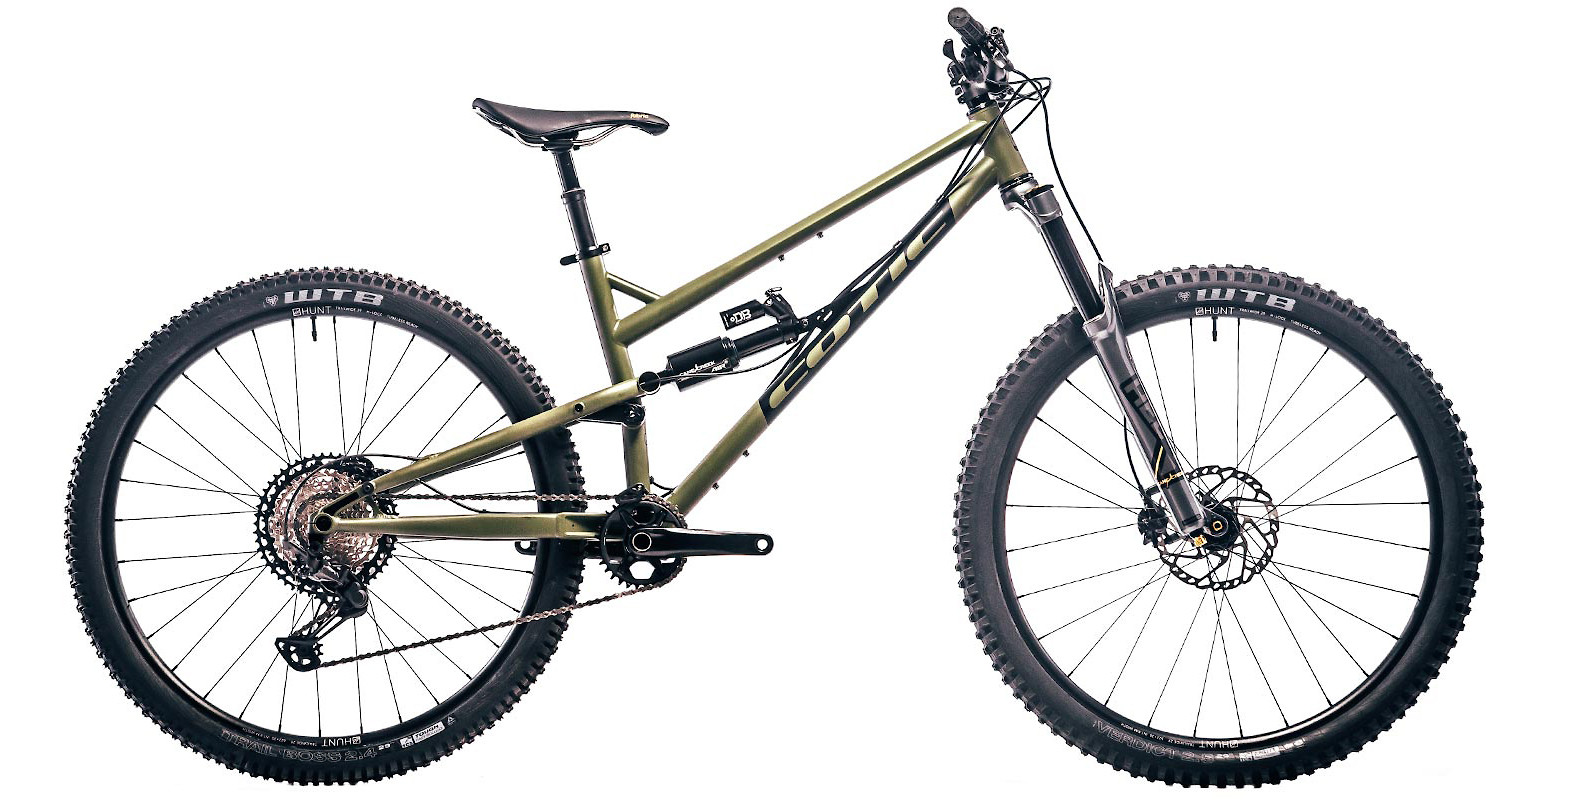 2020 Cotic RocketMAX (Army Green; custom build shown)